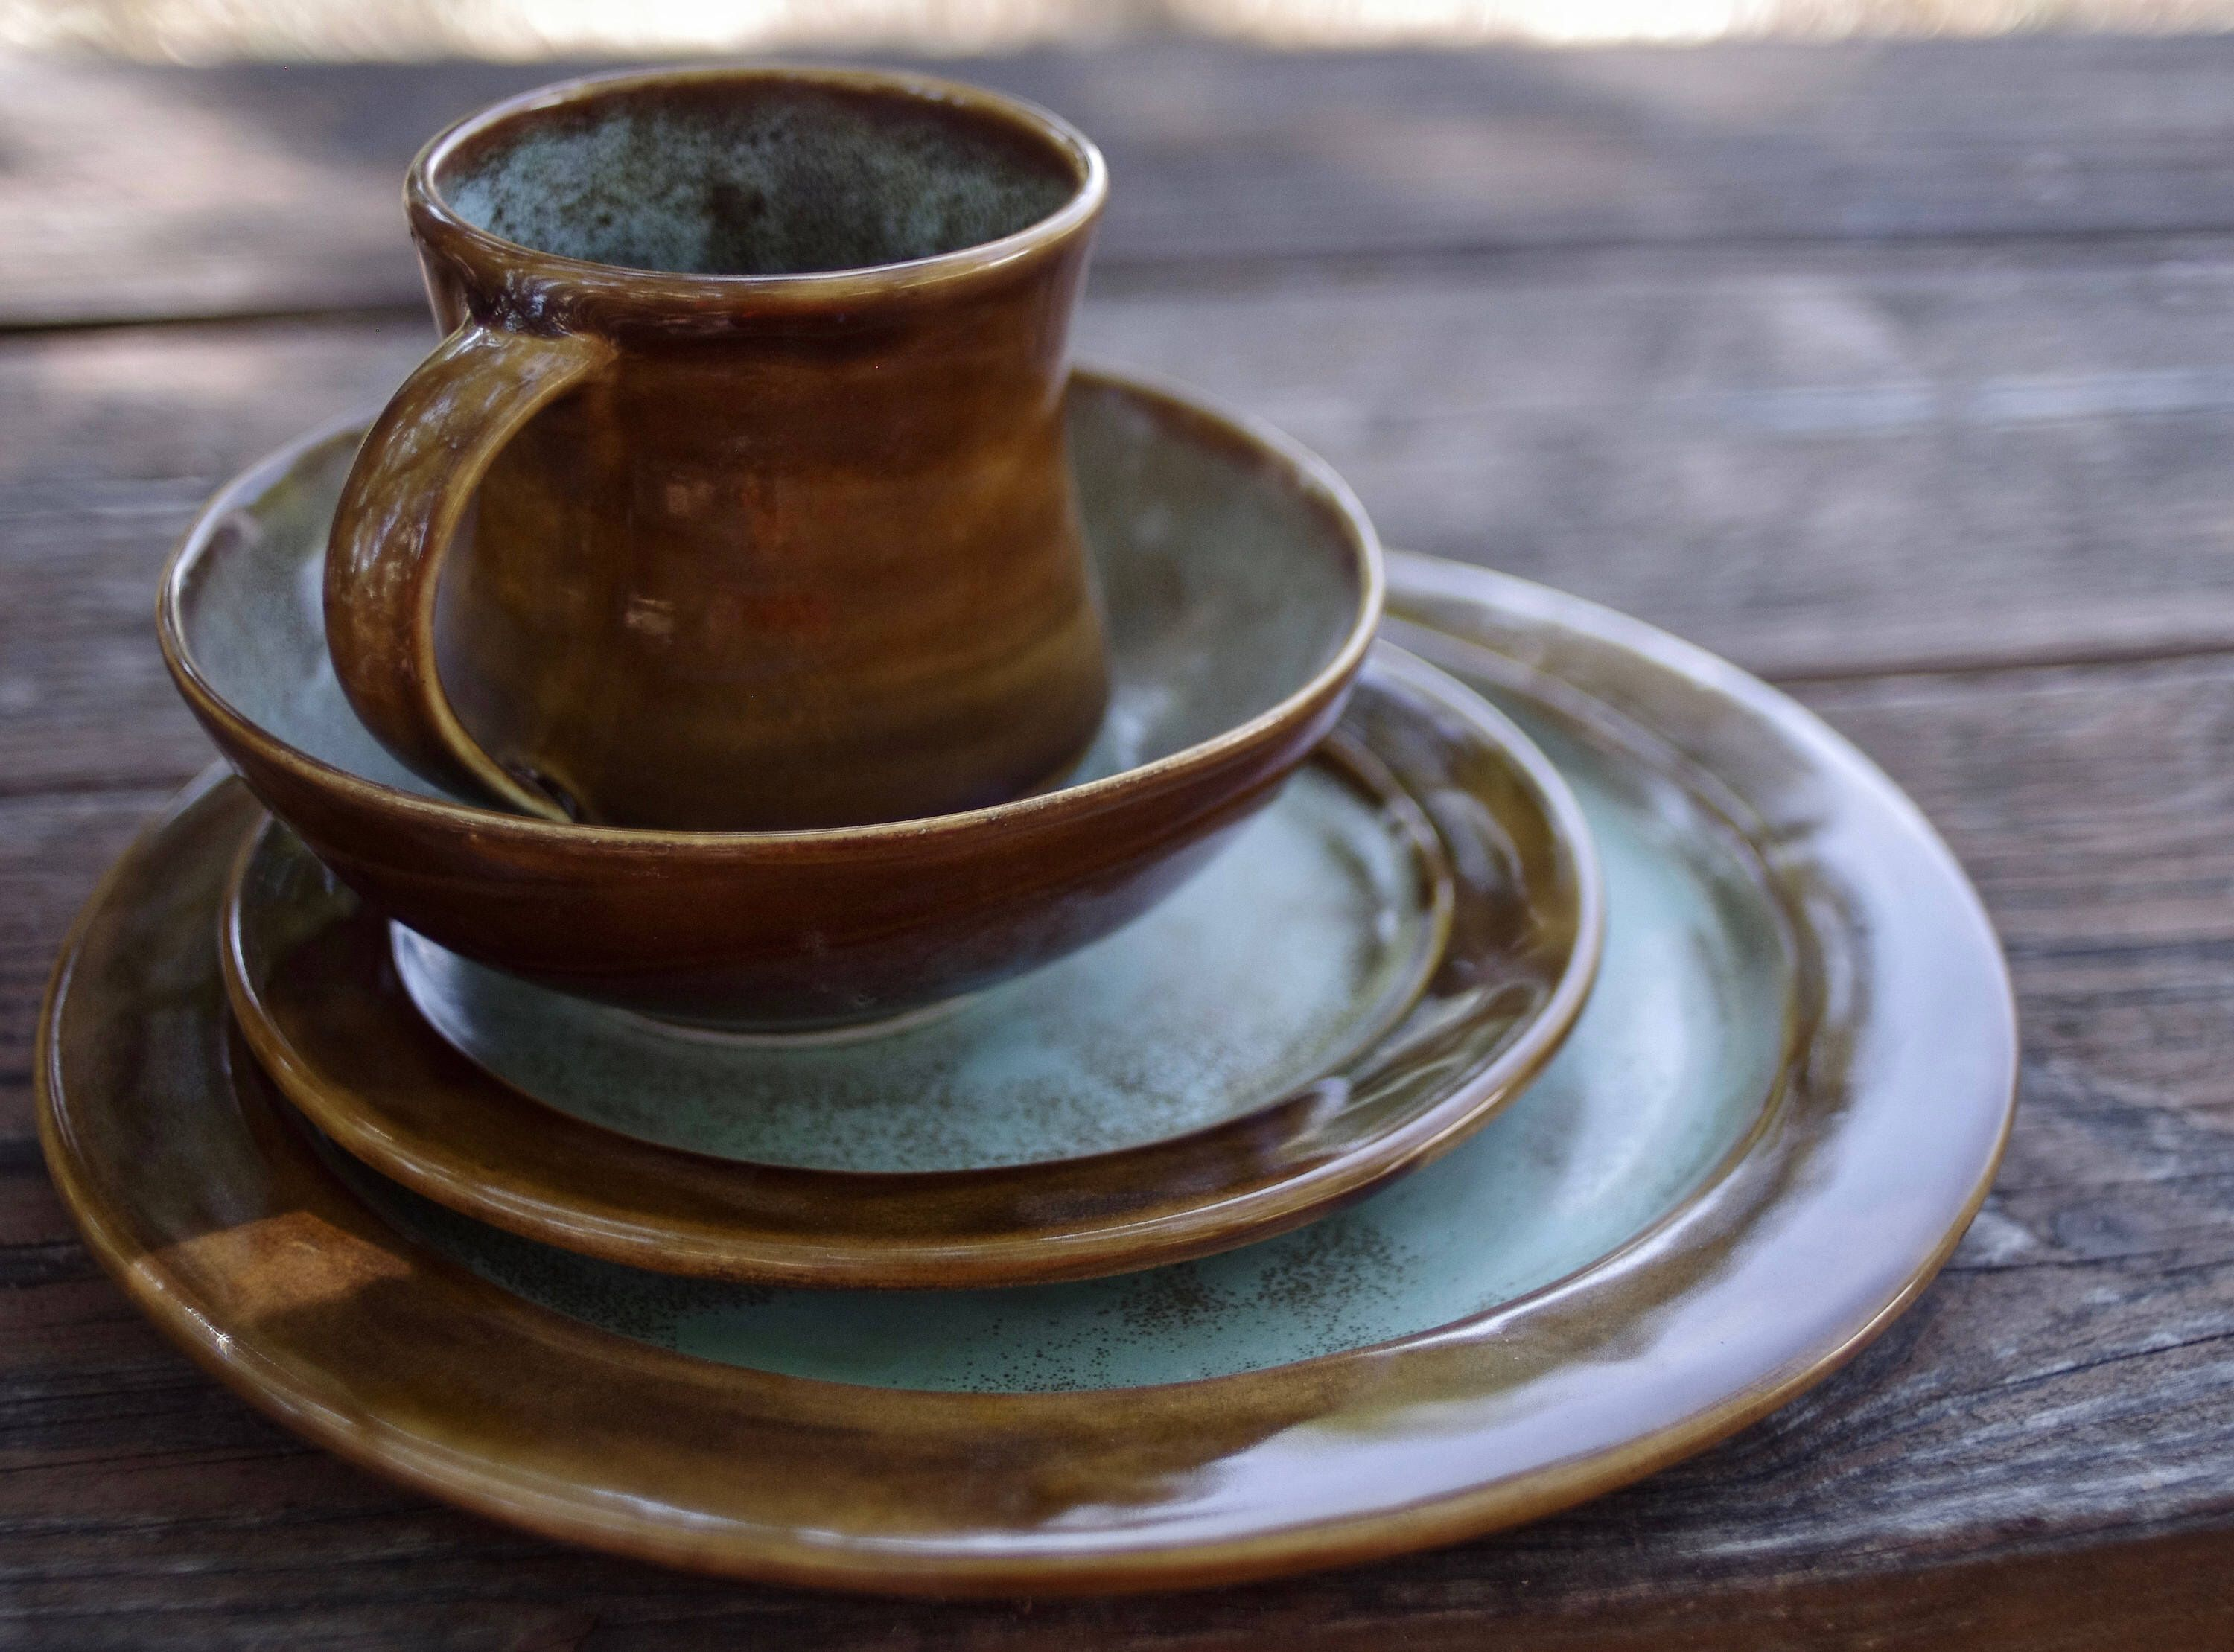 Art Deco Dinnerware Set- Handmade Stoneware Pottery Dinnerware- Brown and Sea Foam Green Spotted & Art Deco Dinnerware Set- Handmade Stoneware Pottery Dinnerware ...